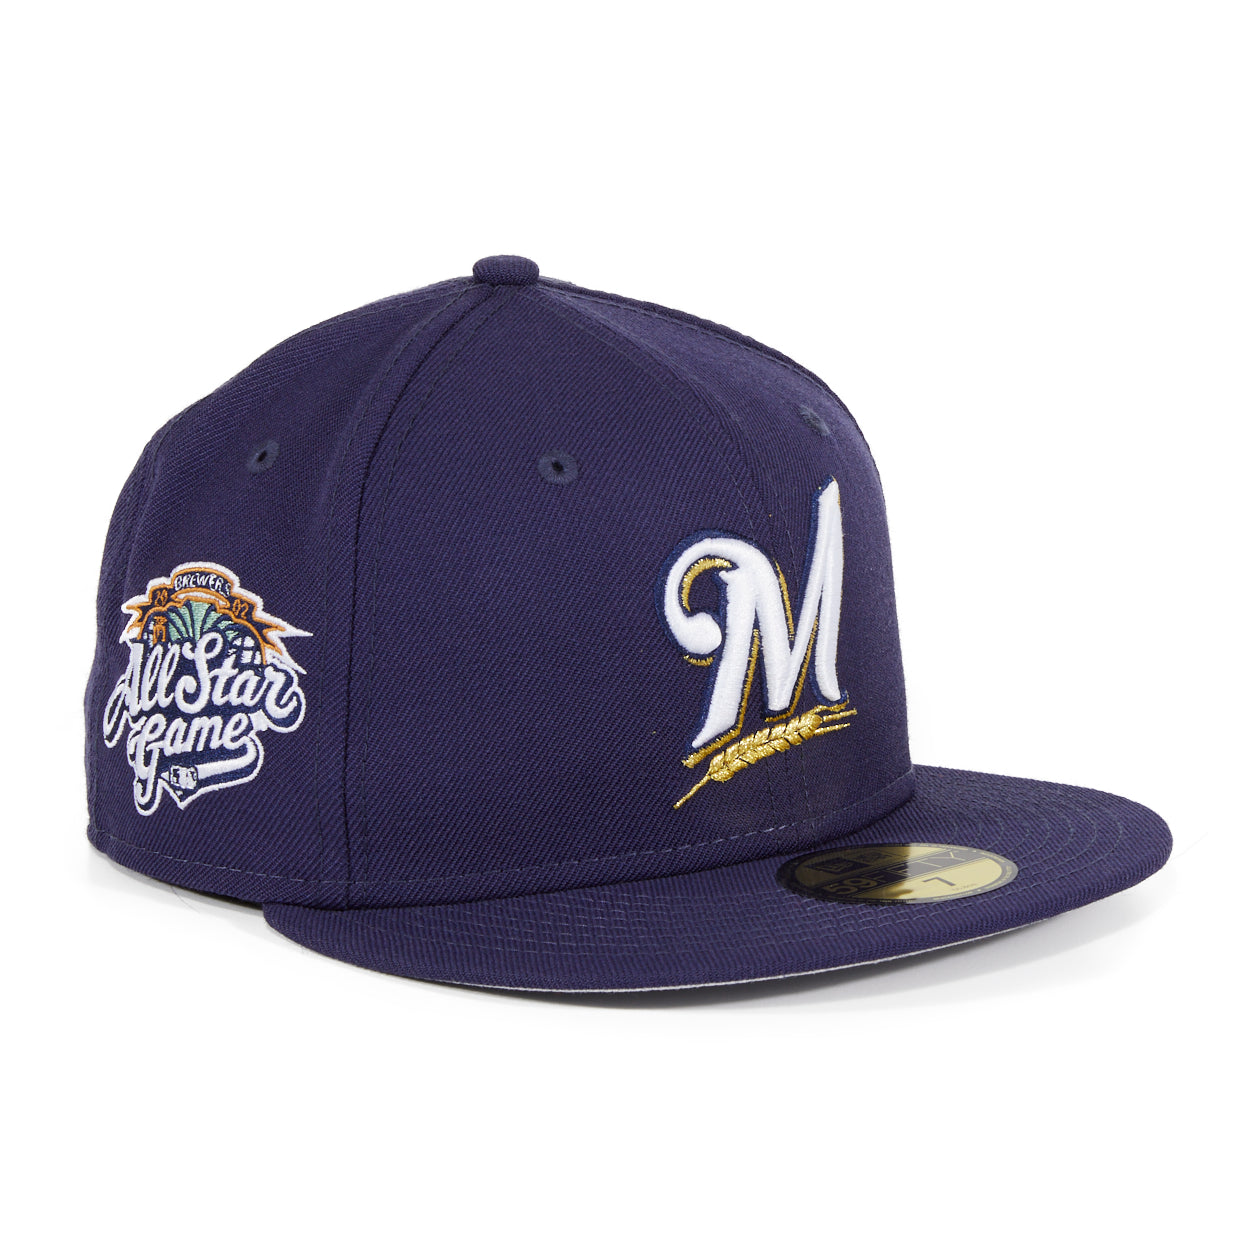 Exclusive New Era 59Fifty Milwaukee Brewers All Star Game 2002 Patch Hat - Navy